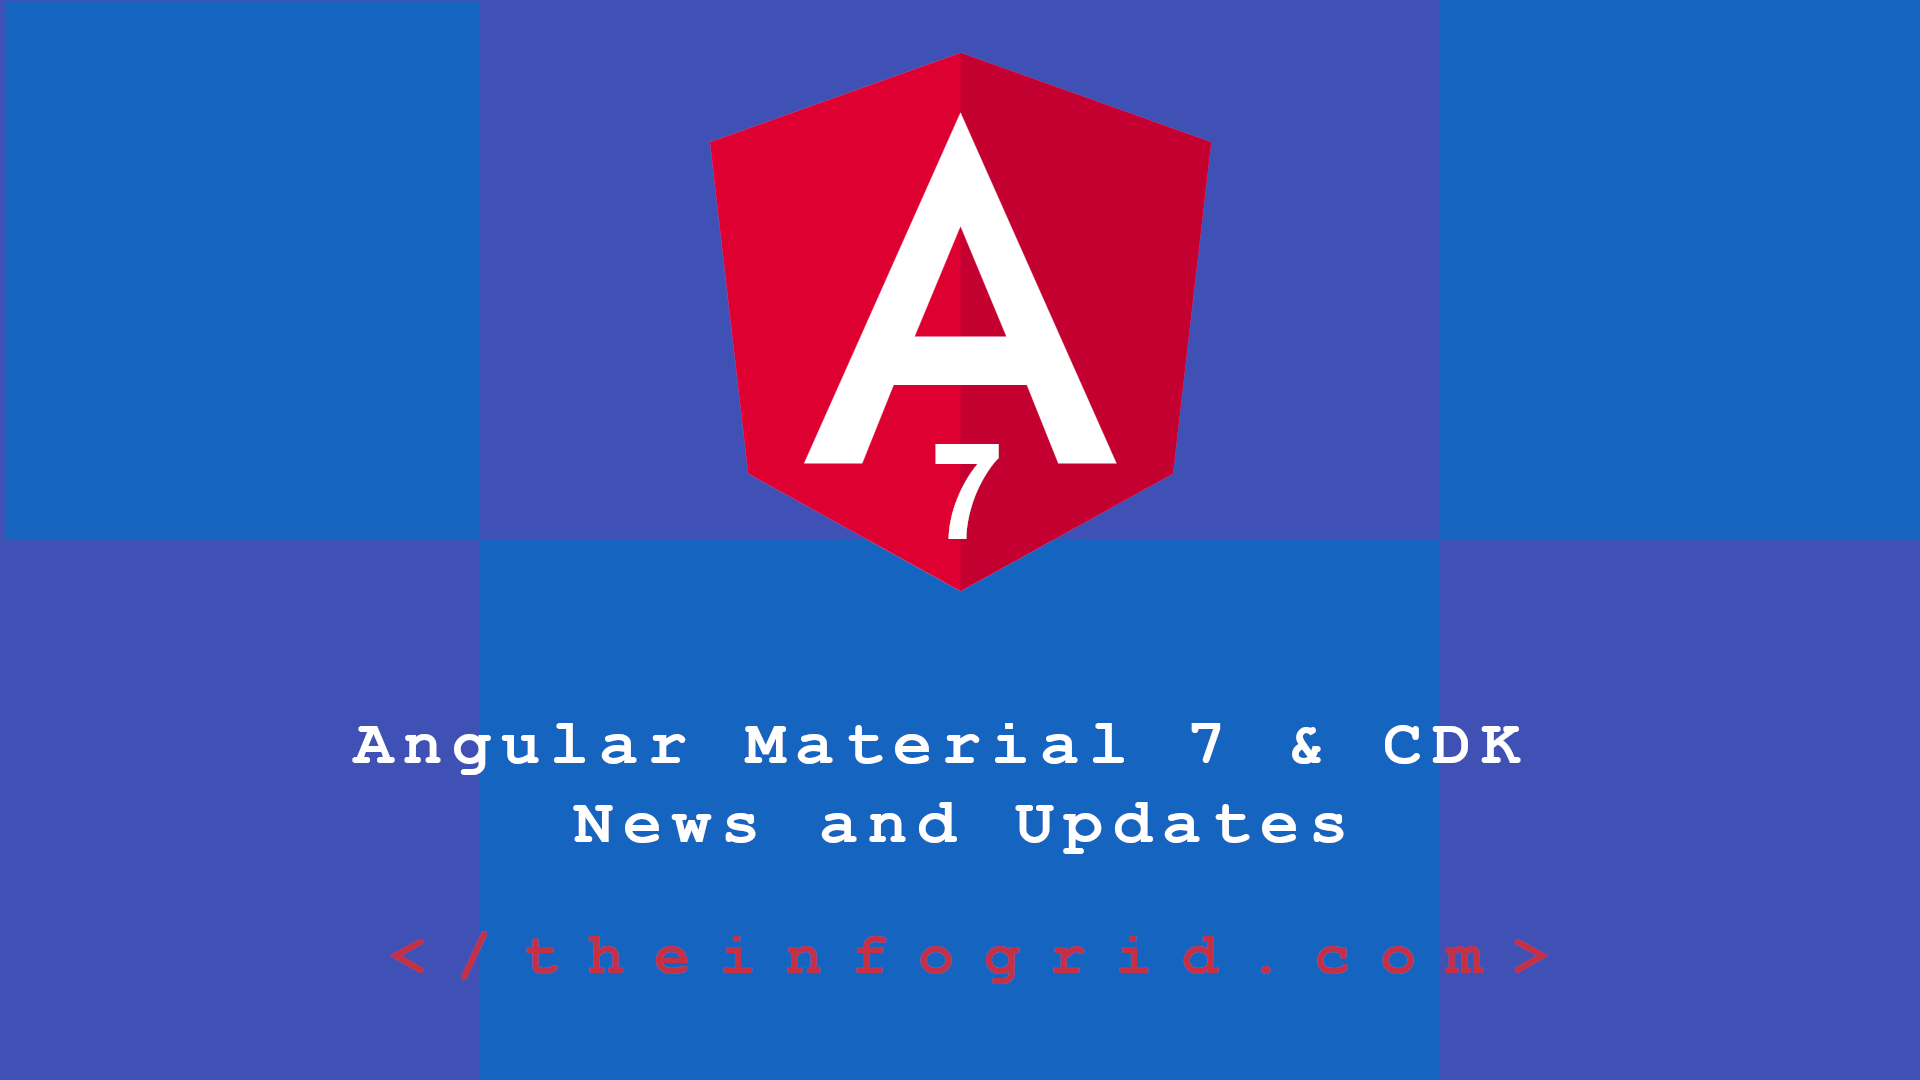 Angular Material 7 and CDK News and Updates